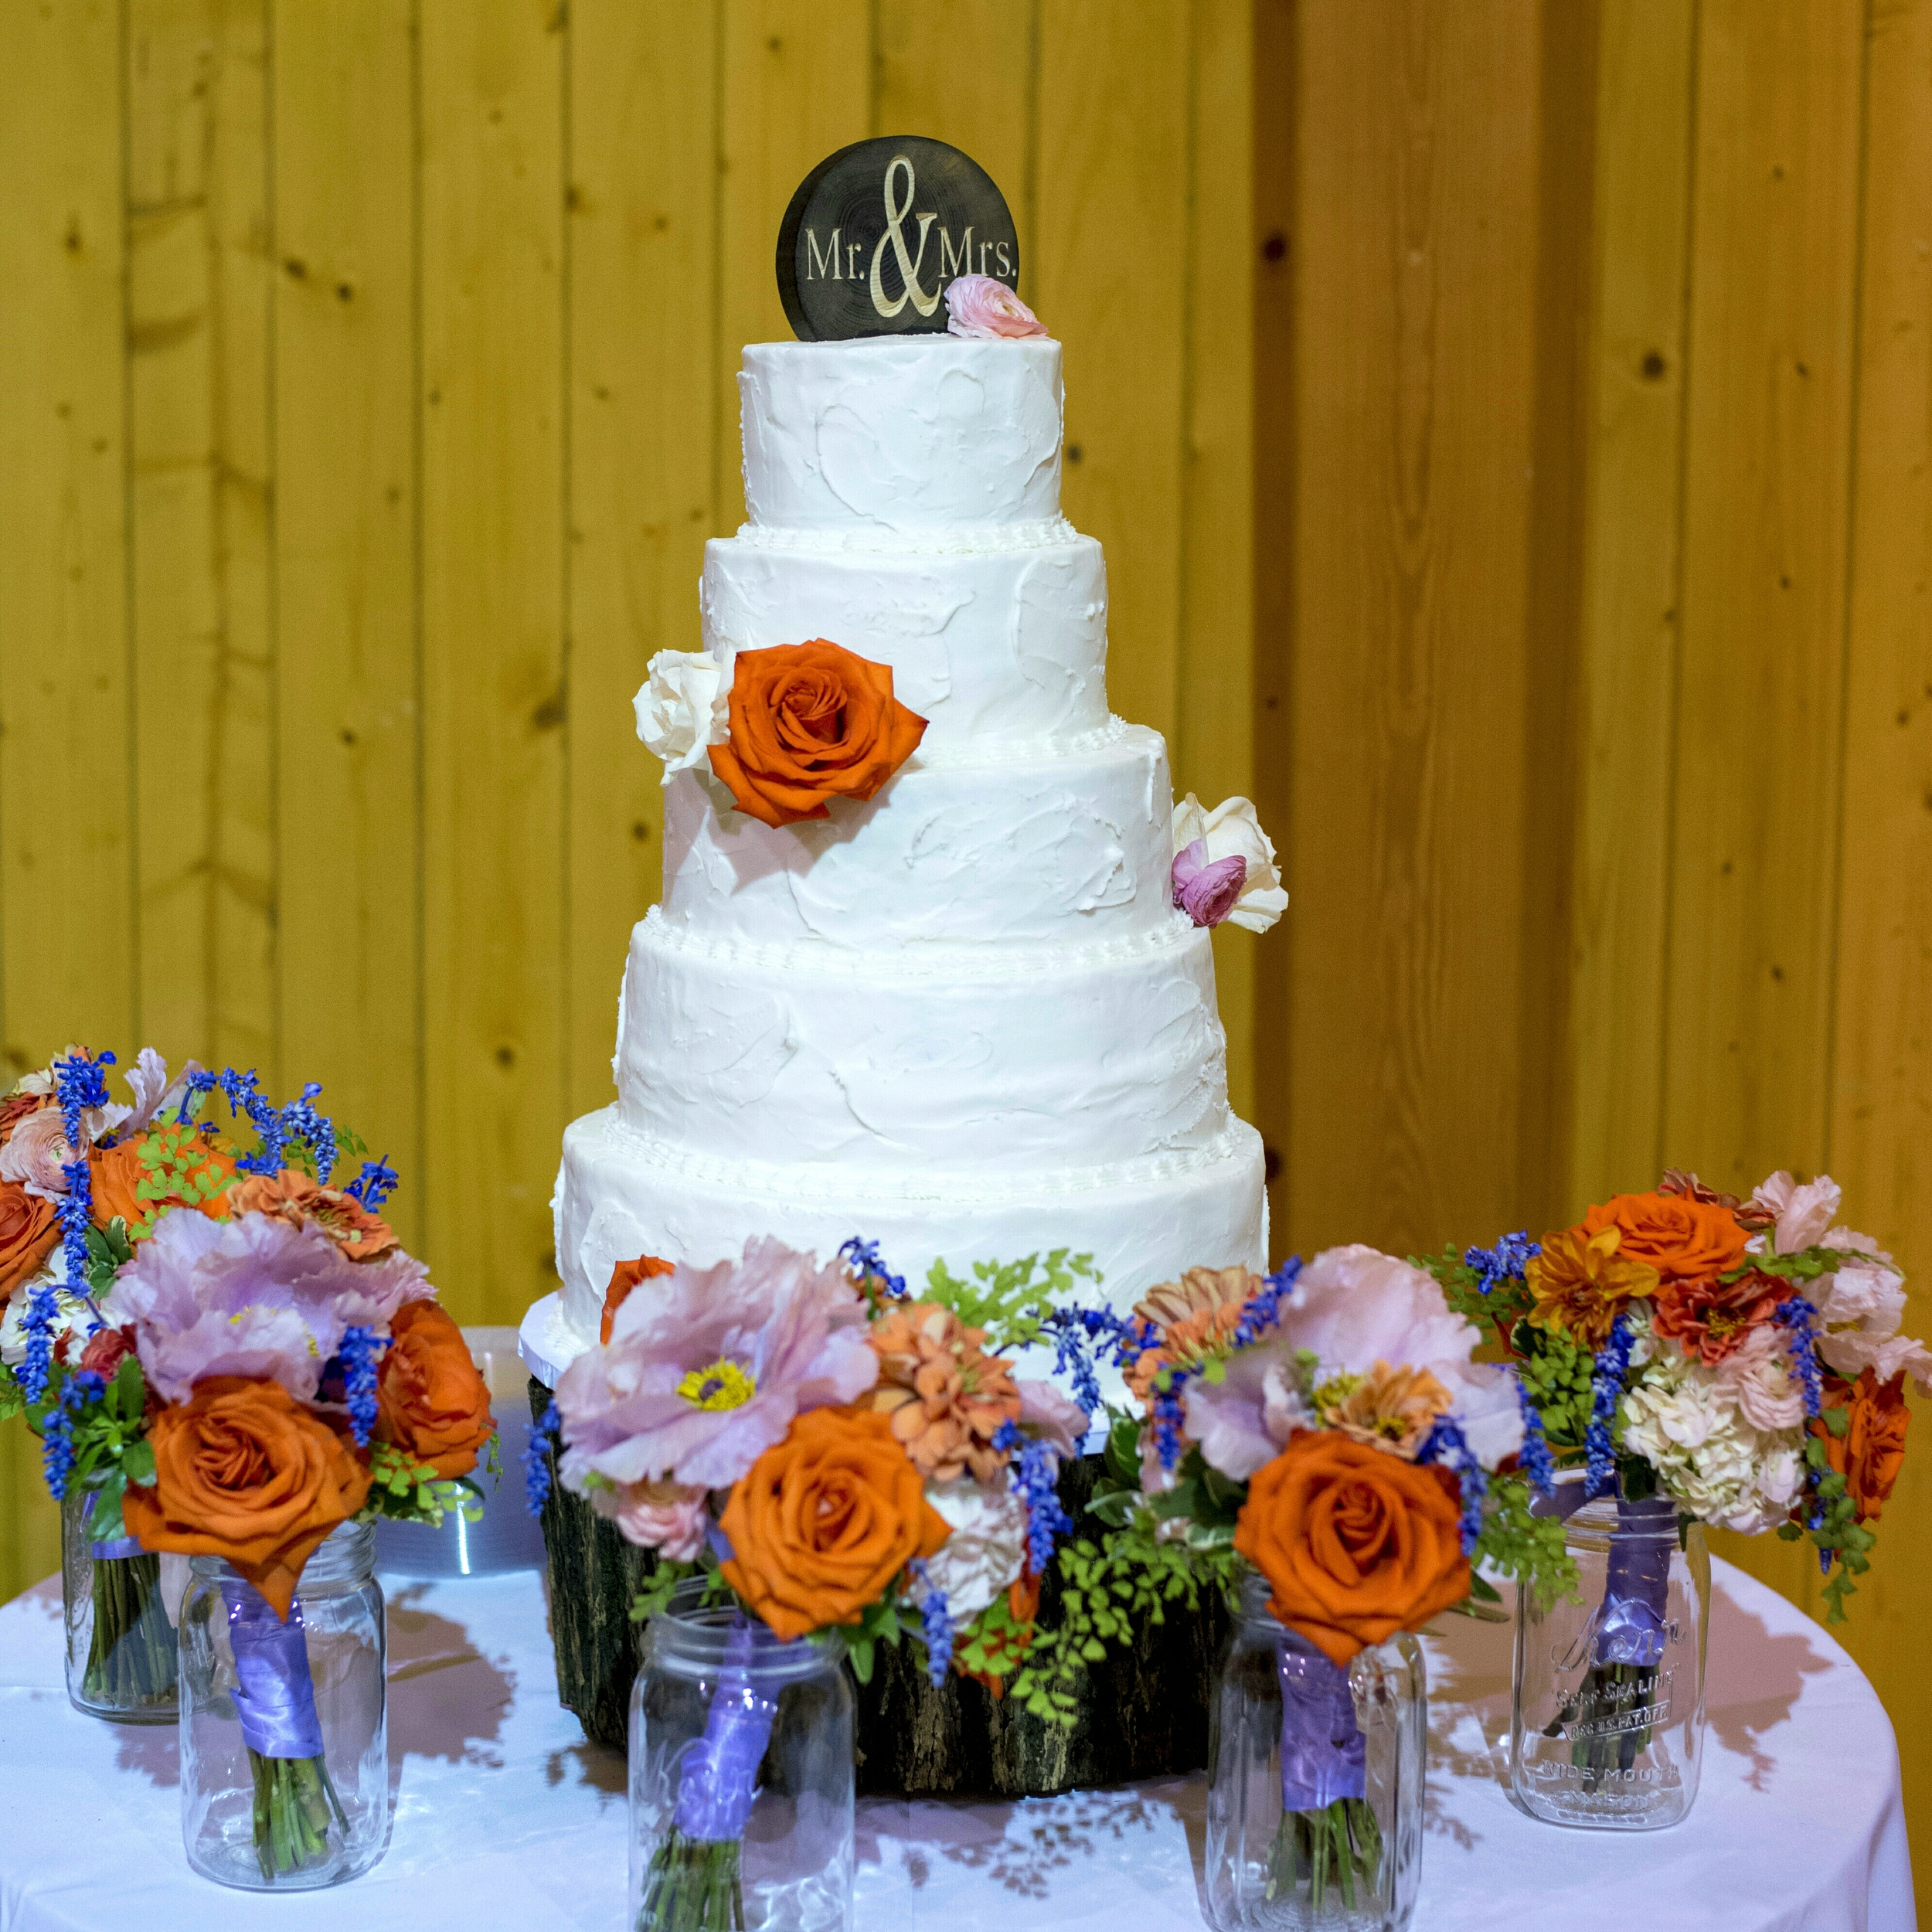 Wedding Cake by Fresh Baked-Sarah Blanchard